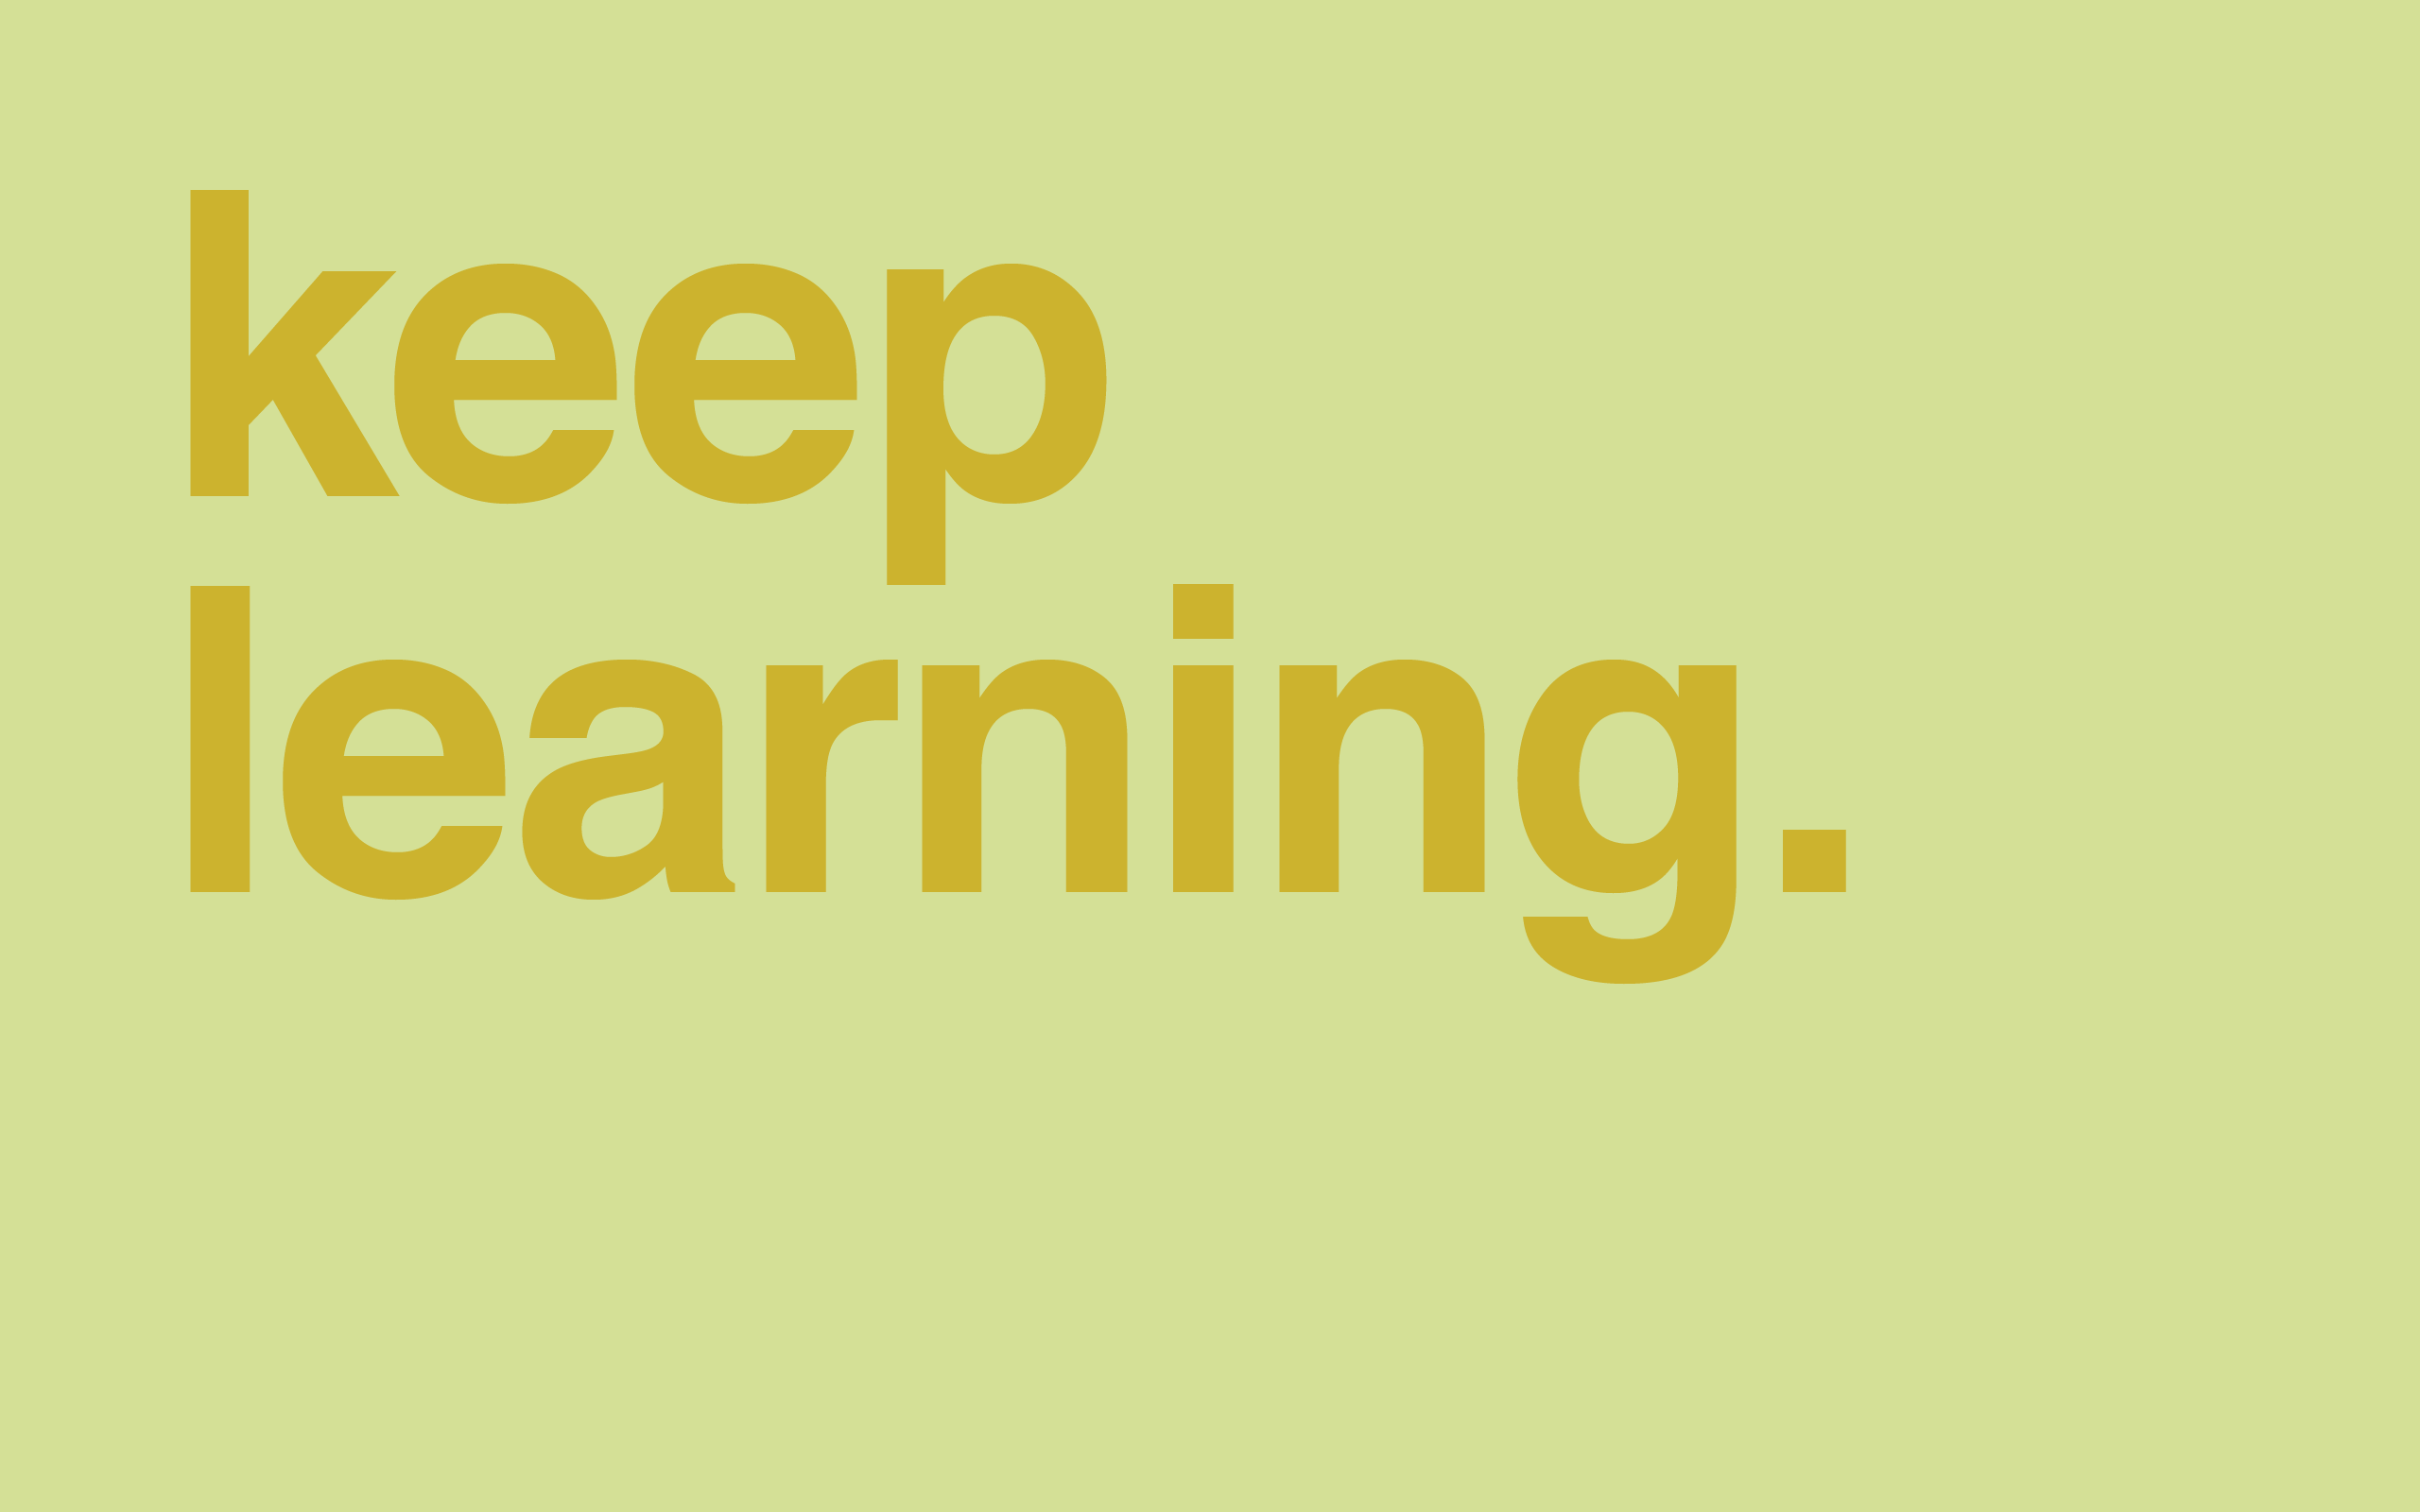 lifelong learning more than flashy phrasing jessica uelmen learning motivational quotes